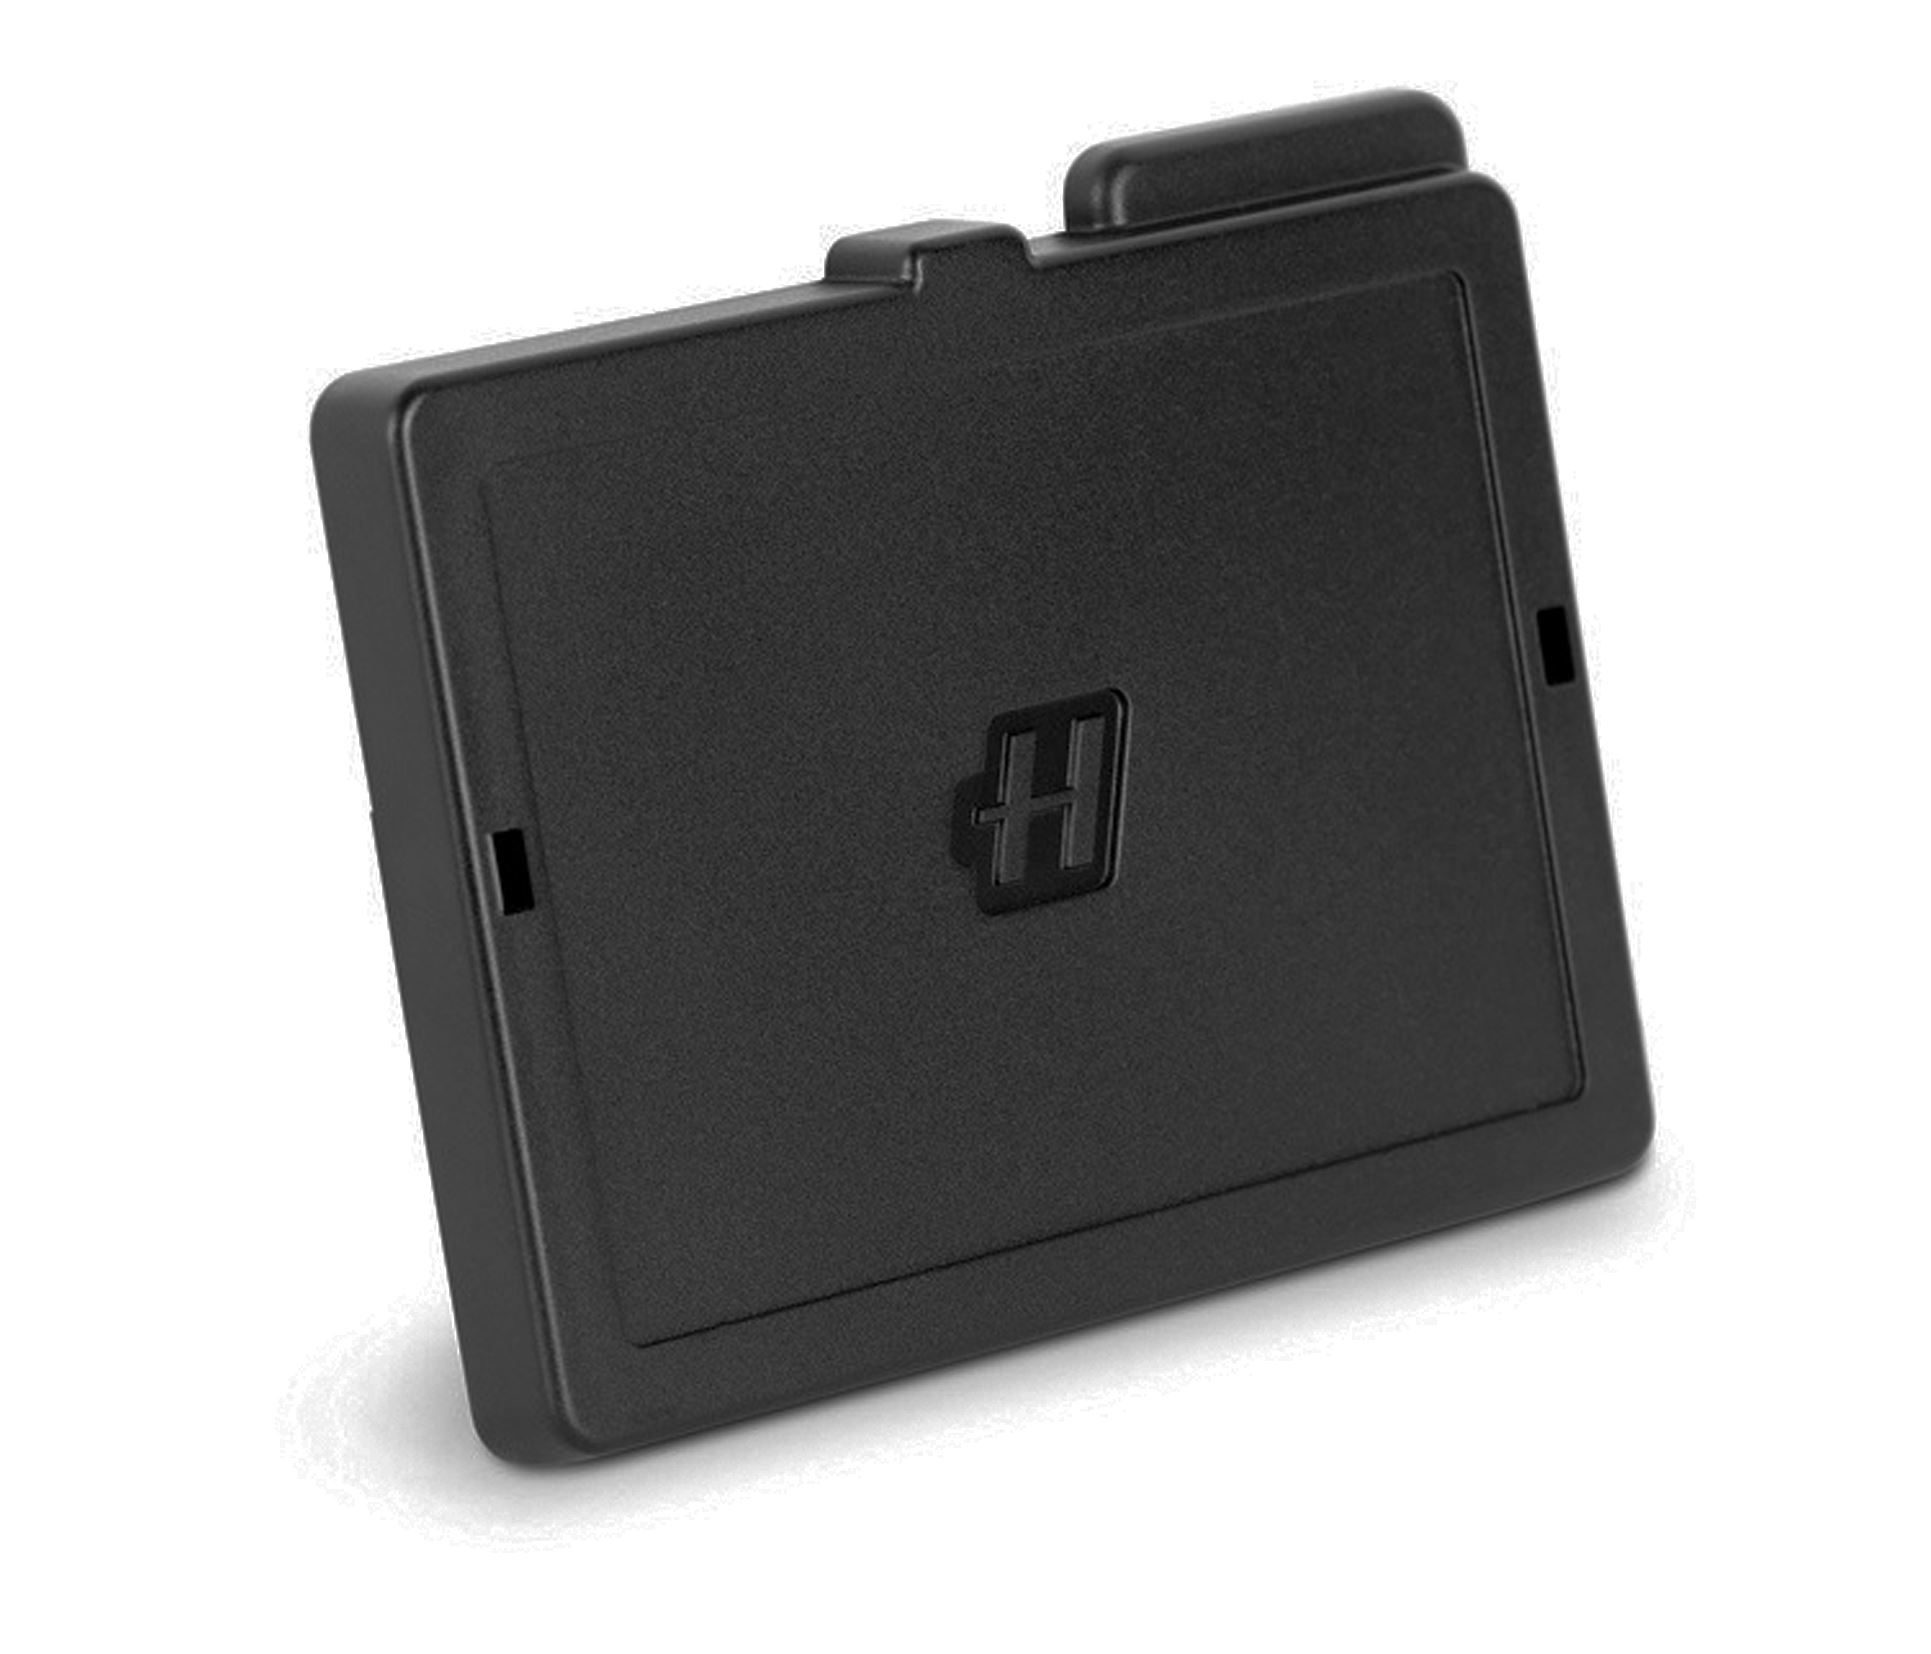 Hasselblad Viewfinder Cover (3053384)